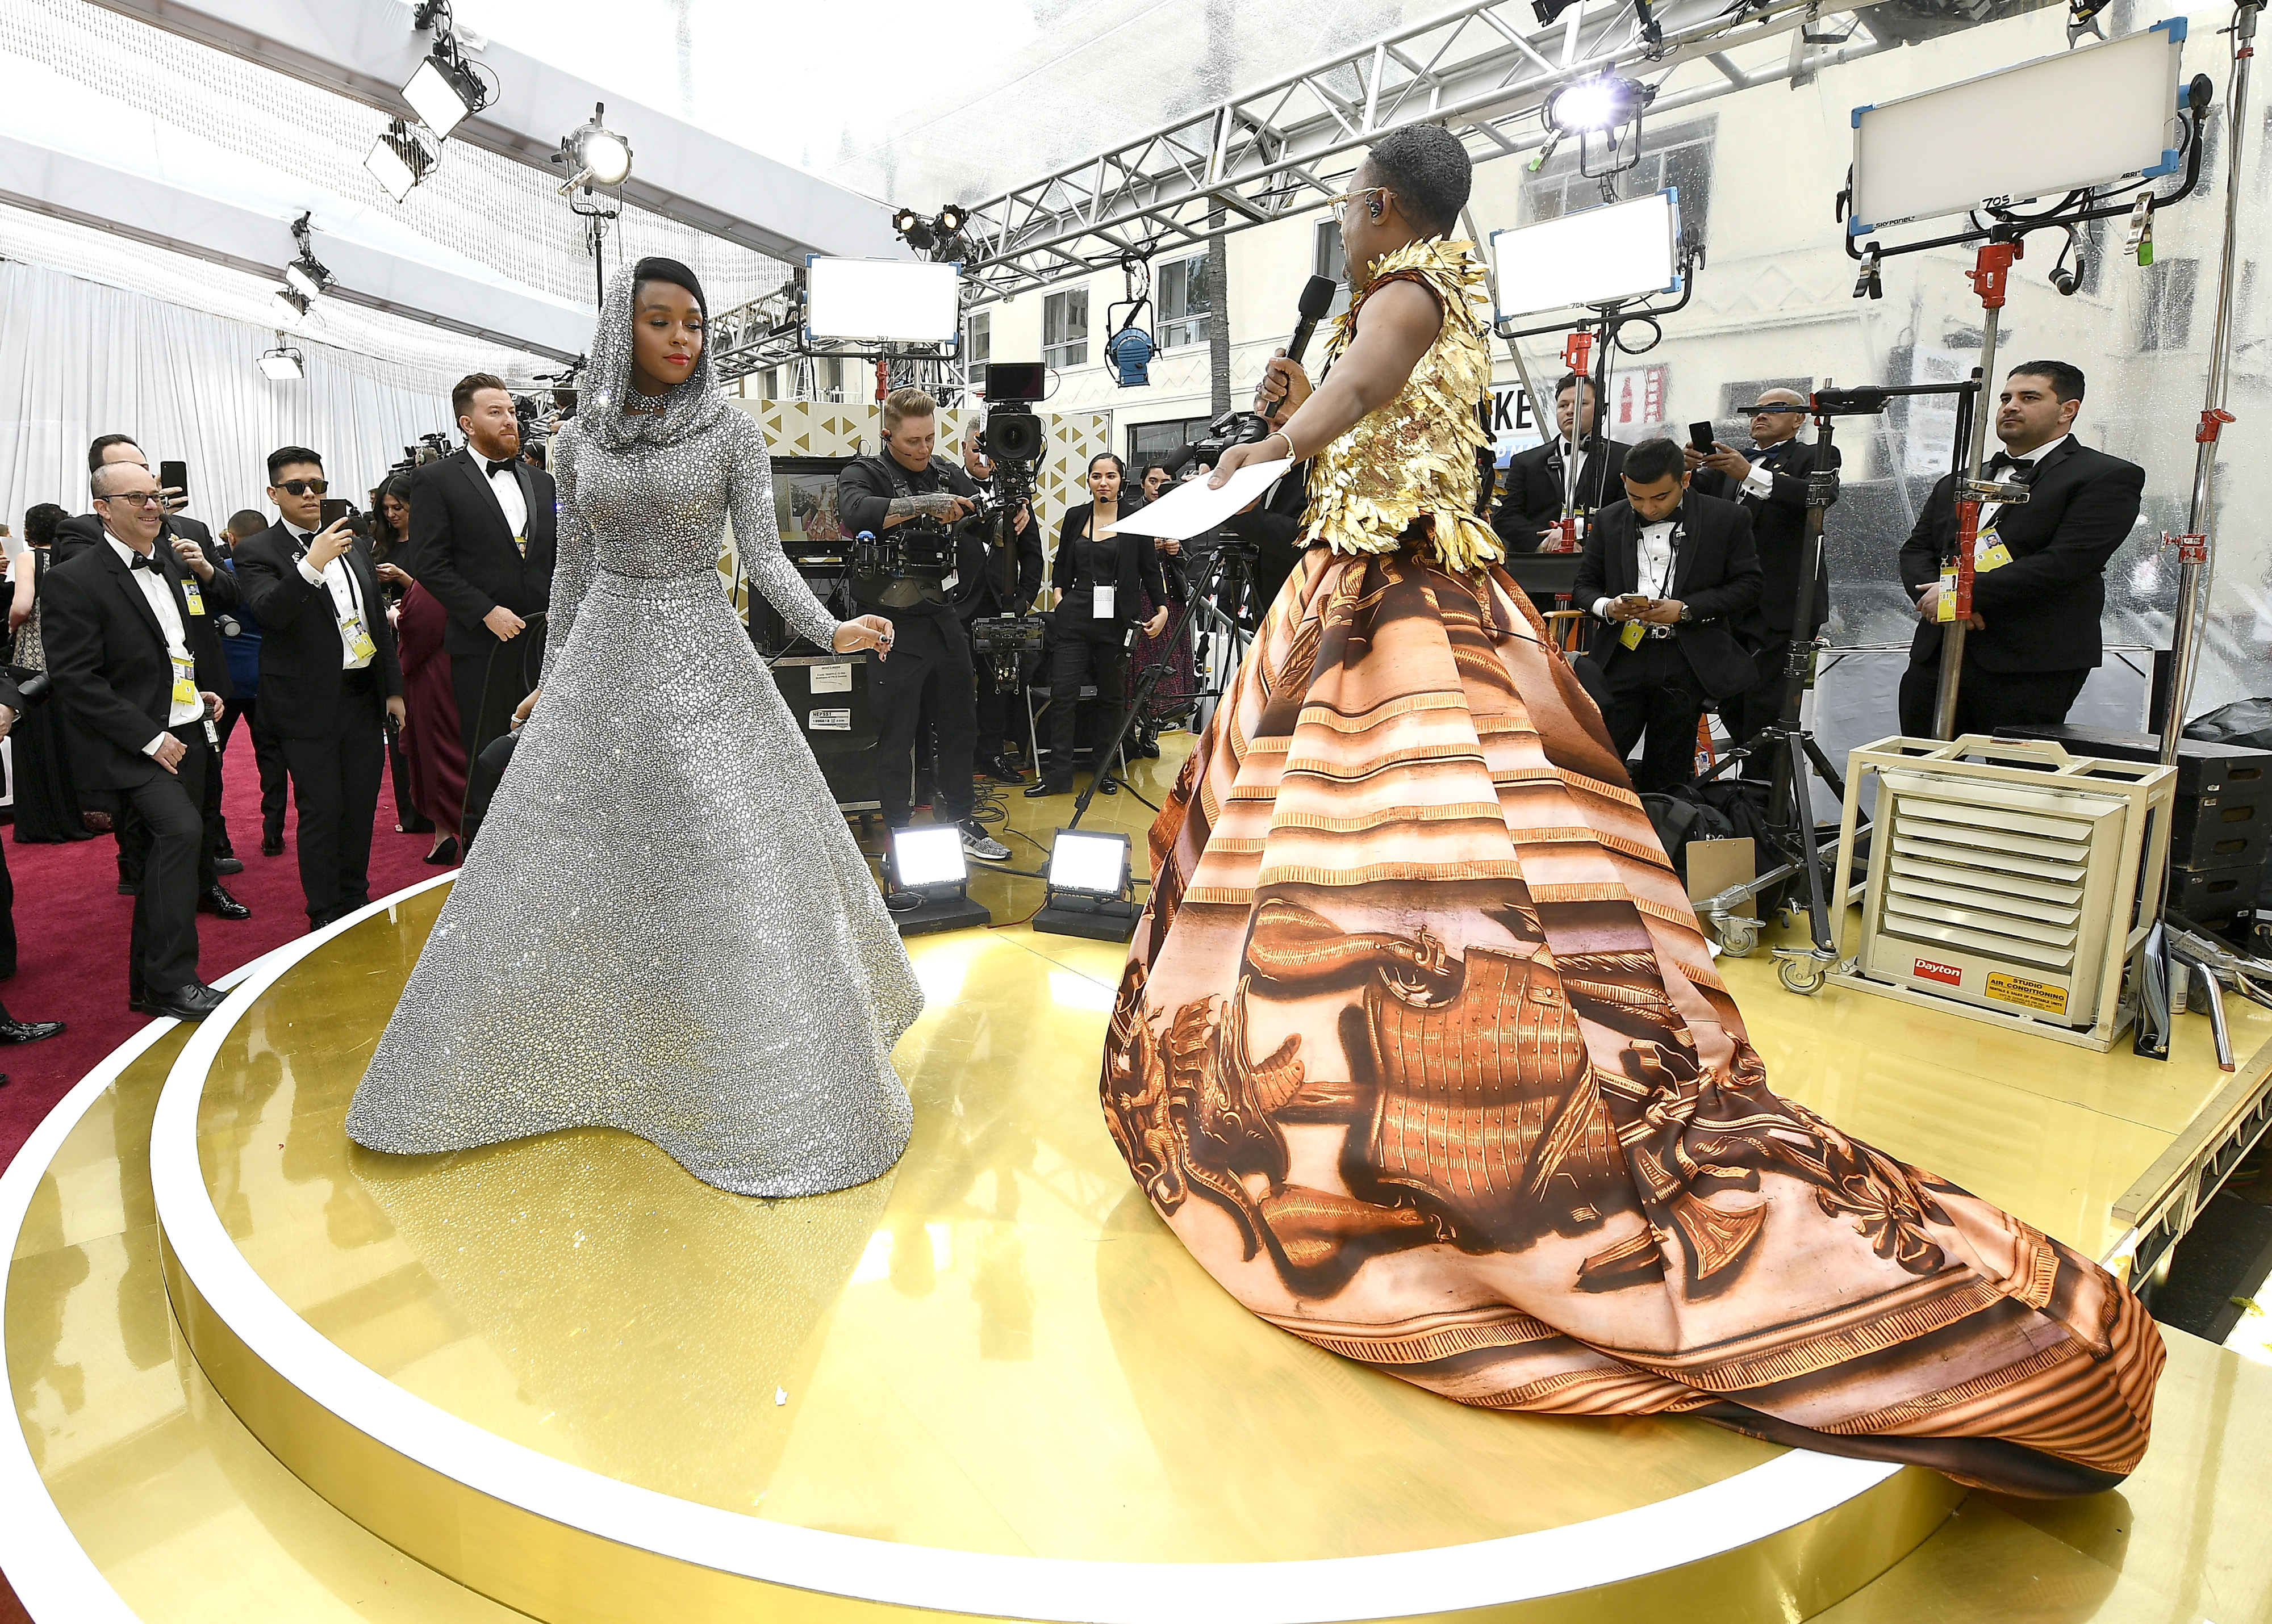 HOLLYWOOD, CALIFORNIA - FEBRUARY 09: Janelle Monáe and  Billy Porter attend the 92nd Annual Academy Awards at Hollywood and Highland on February 09, 2020 in Hollywood, California.